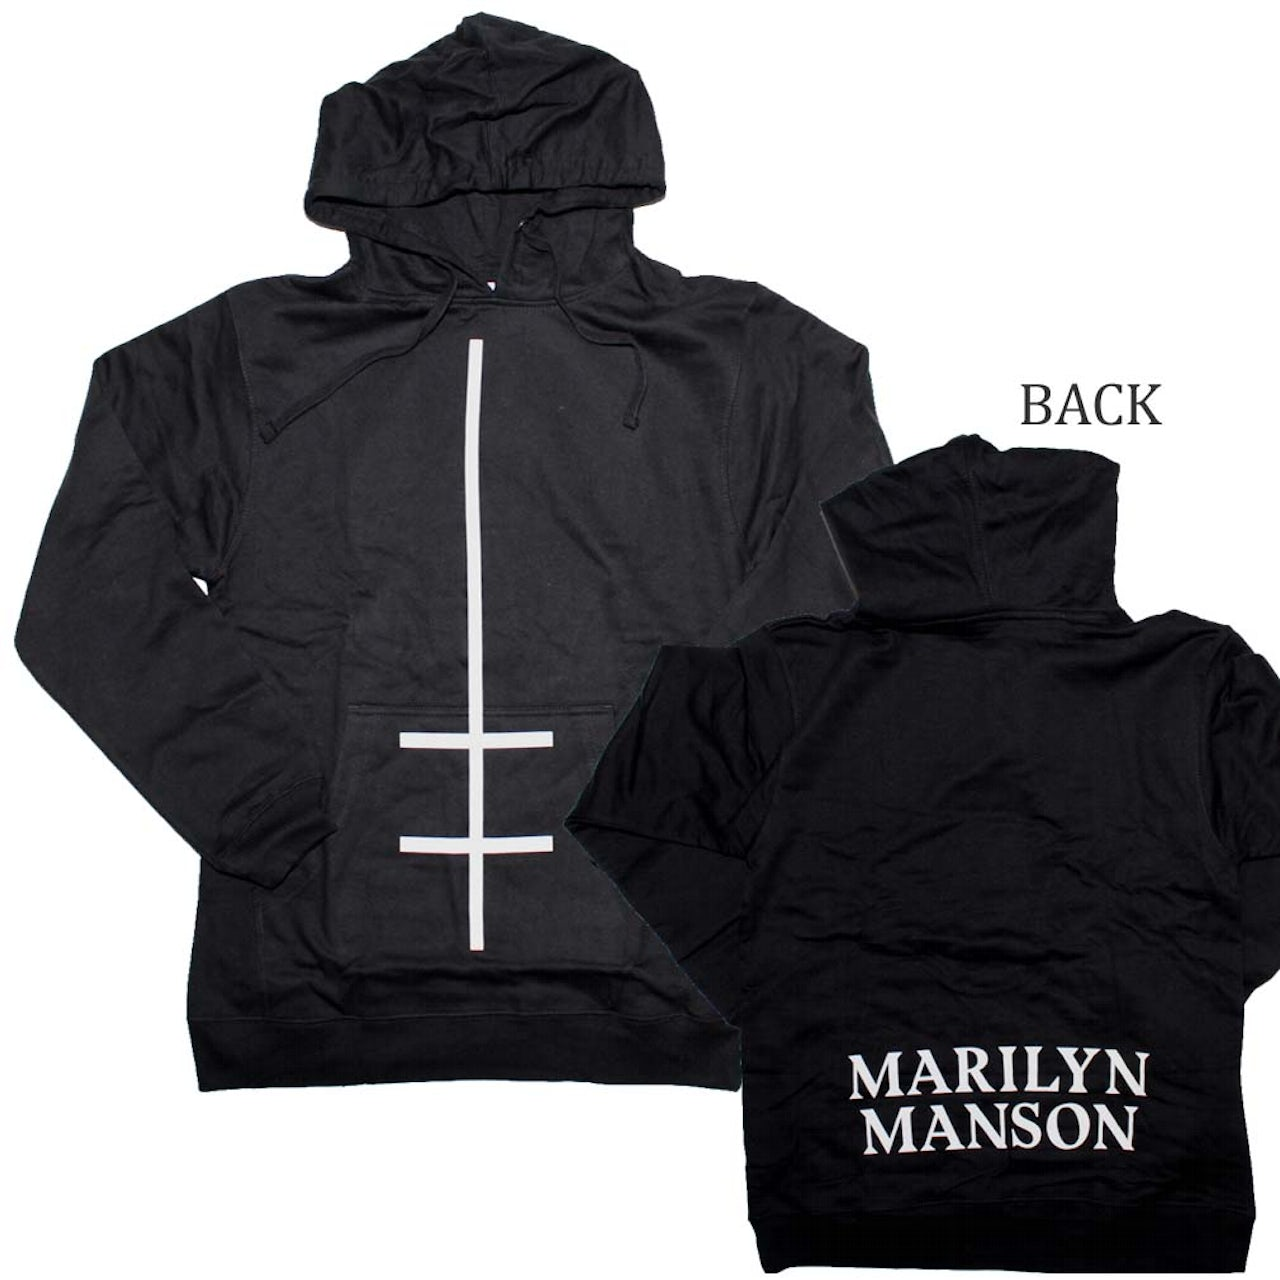 retail prices find lowest price online here Marilyn Manson Double Cross Sweatshirt